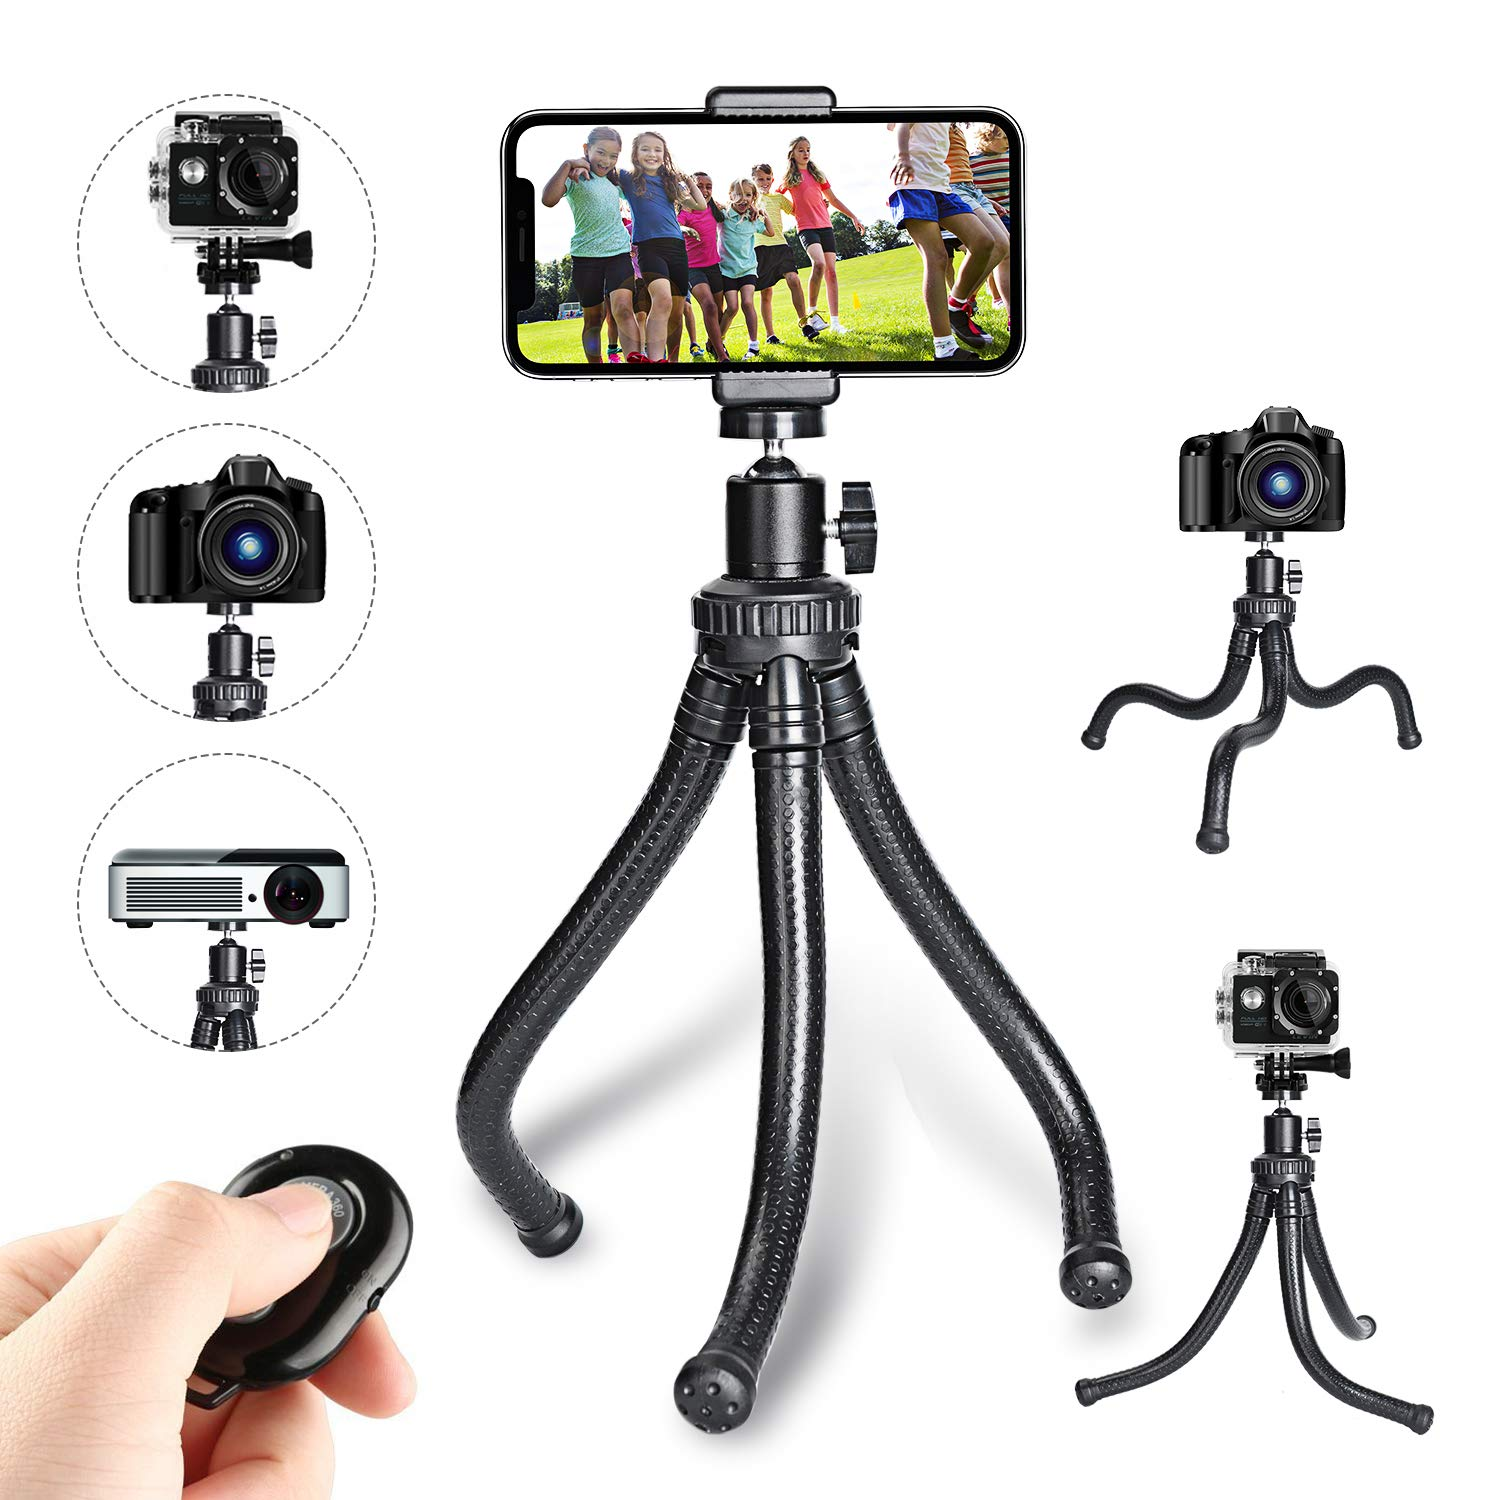 Leypin Flexible Phone Tripod,Portable and Adjustable Camera Stand Holder with Wireless Remote and Universal Clip 360°Rotating Suitable for iPhone, Android Phone, Camera, Sports Camera GoPro by Leypin